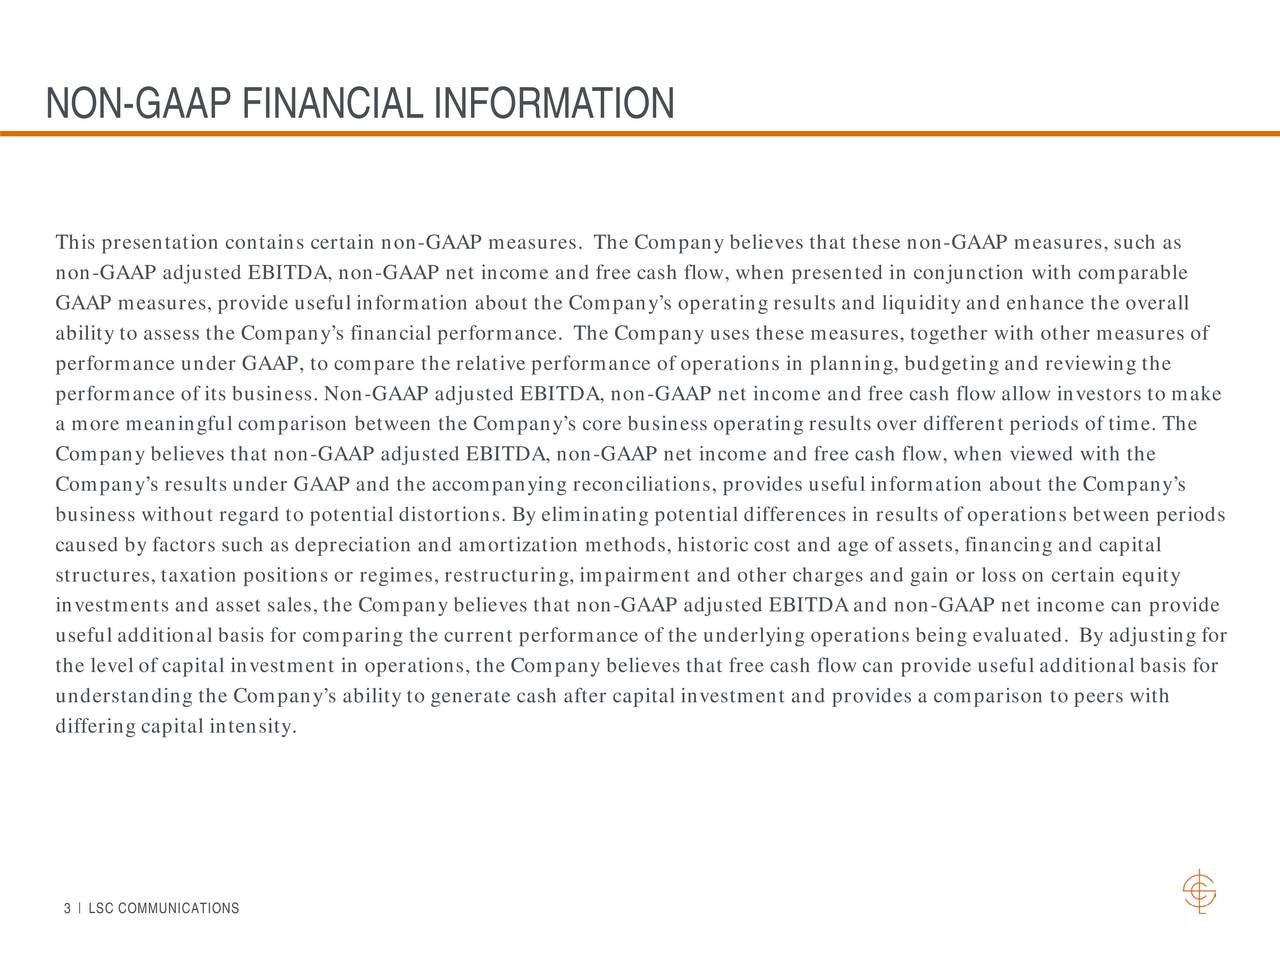 This presentation contains certain non-GAAP measures. The Company believes that these non-GAAP measures, such as non-GAAP adjusted EBITDA, non-GAAP net income and free cash flow, when presented in conjunction with comparable GAAP measures, provide useful information about the Companys operating results and liquidity and enhance the overall ability to assess the Companys financial performance. The Company uses these measures, together with other measures of performance under GAAP, to compare the relative performance of operations in planning, budgeting and reviewing the performance of its business. Non-GAAP adjusted EBITDA, non-GAAP net income and free cash flow allow investors to make a more meaningful comparison between the Companys core business operating results over different periods of time. The Company believes that non-GAAP adjusted EBITDA, non-GAAP net income and free cash flow, when viewed with the Companys results under GAAP and the accompanying reconciliations, provides useful information about the Companys business without regard to potential distortions. By eliminating potential differences in results of operations betweedsperio caused by factors such as depreciation and amortization methods, historic cost and age of assets, financing and capital structures, taxation positions or regimes, restructuring, impairment and other charges and gain or loss on certain equity investments and asset sales, the Company believes that non-GAAP adjusted EBITDA and non-GAAP net income can provide useful additional basis for comparing the current performance of the underlying operations being evaluated. By adjusting for the level of capital investment in operations, the Company believes that free cash flow can provide useful additionalorasis f understanding the Companys ability to generate cash after capital investment and provides a comparison to peers with differing capital intensity. 3 | LSC COMMUNICATIONS